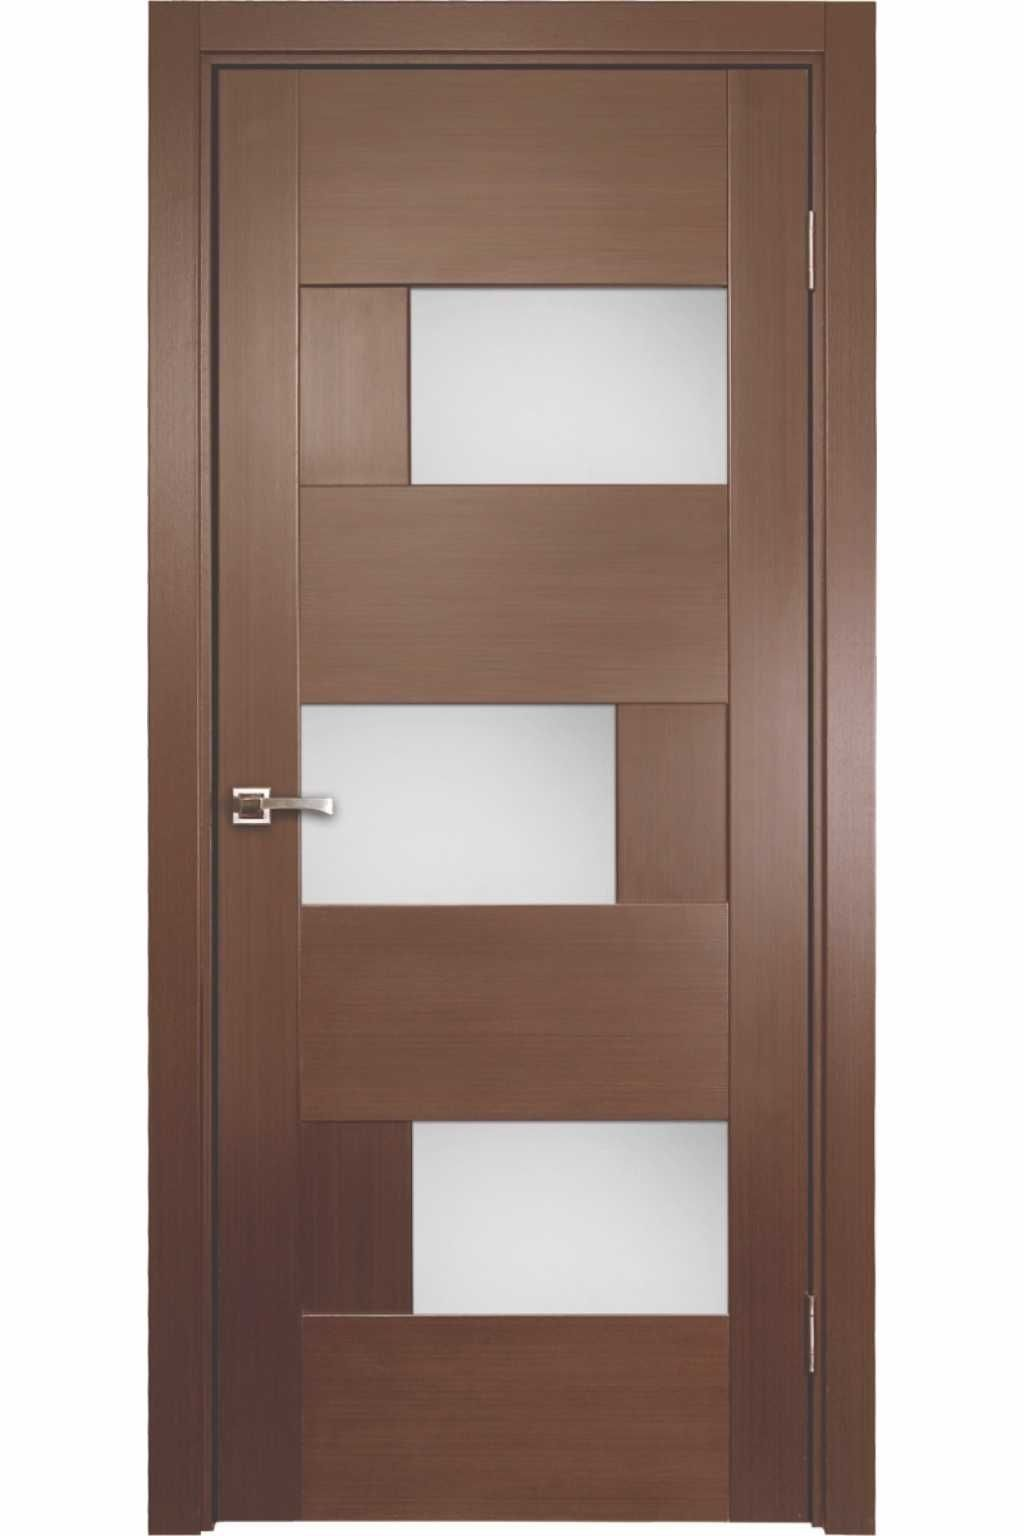 Home Interior Designs: Fantastic Wooden Doors Will Give Another Dimension  To Your Home